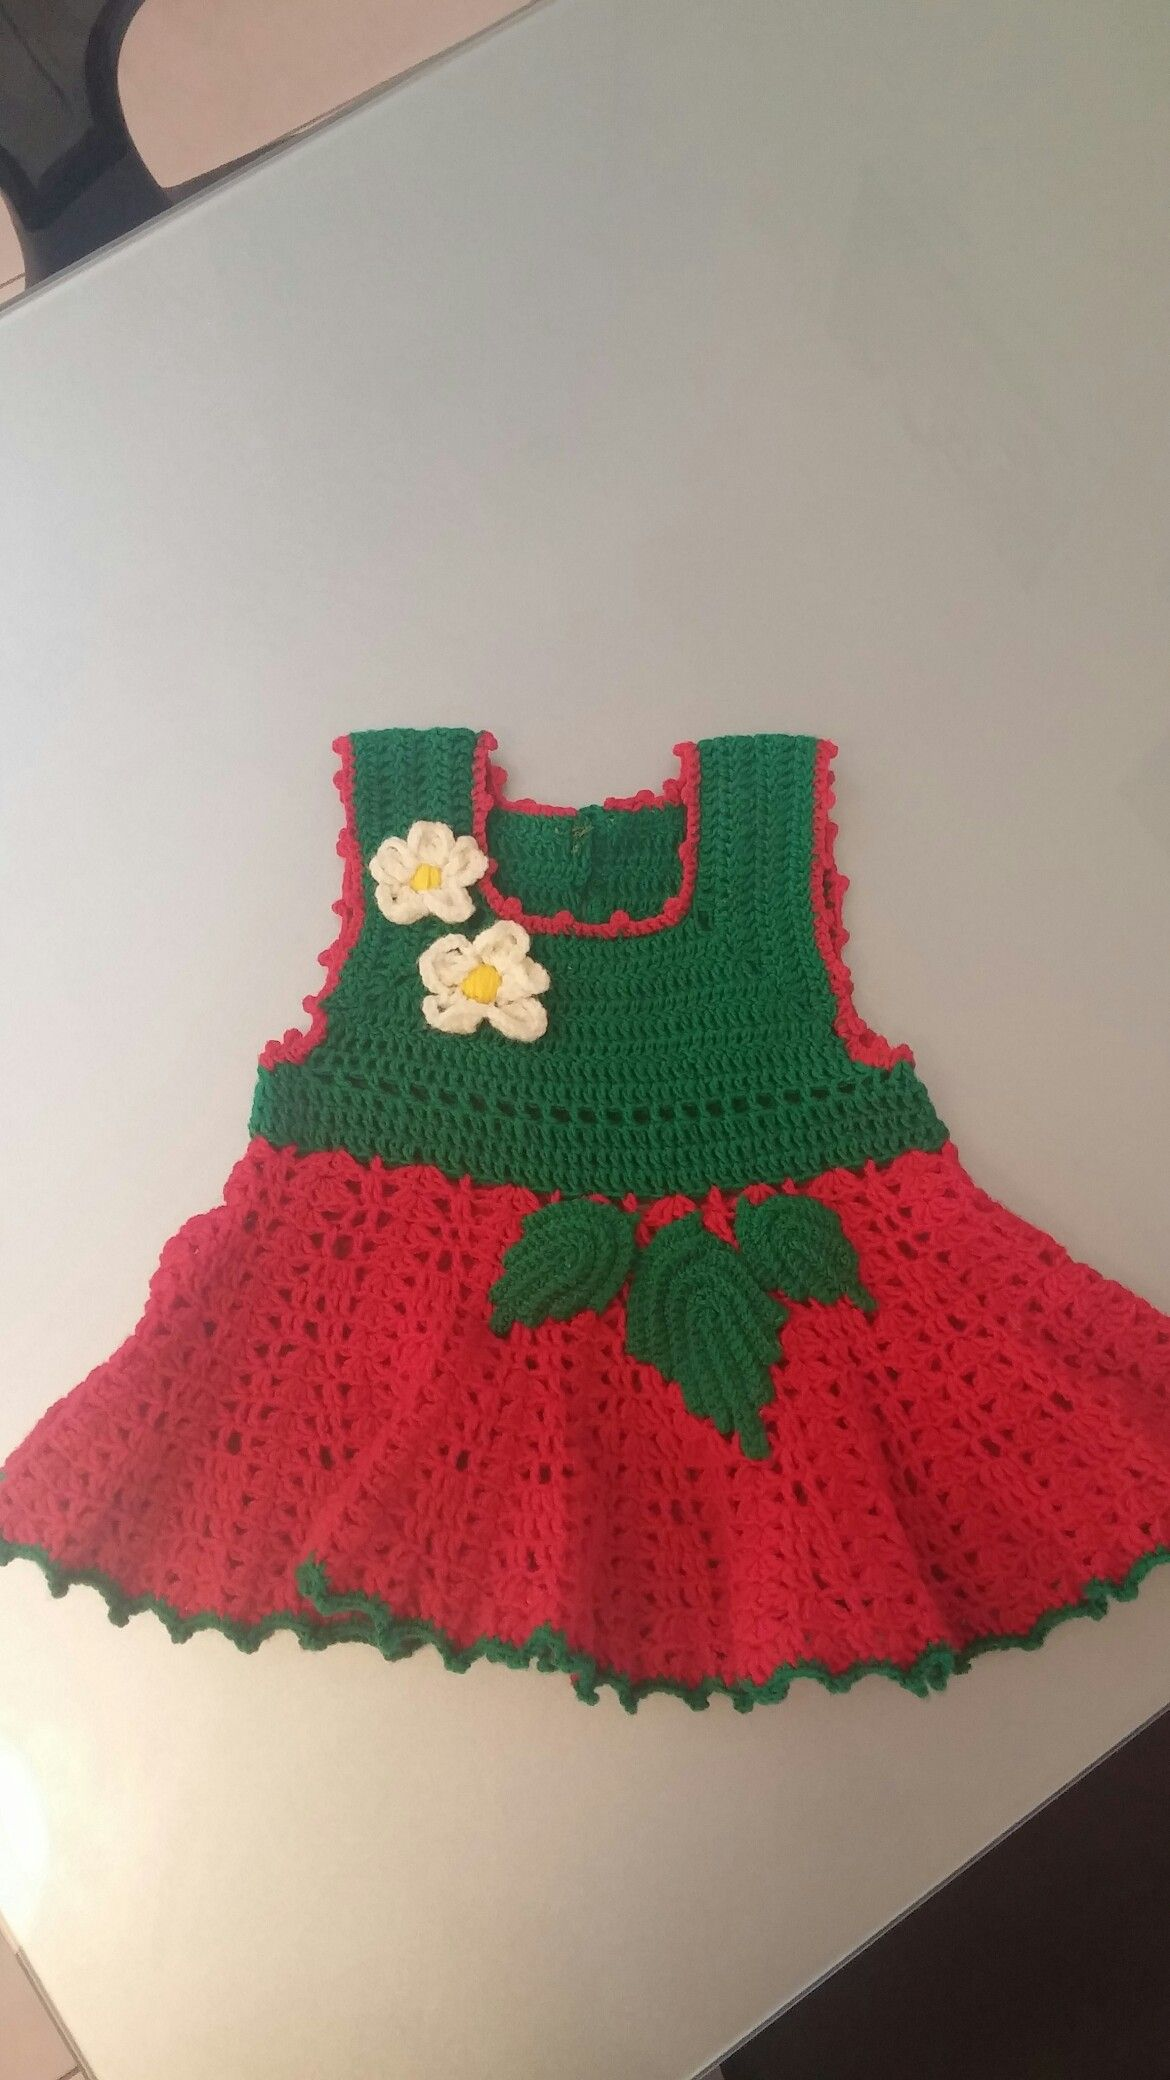 12 months old hallooween costume strawberry crochet dress 12 months old hallooween costume strawberry crochet dress patterns found across the web bankloansurffo Gallery